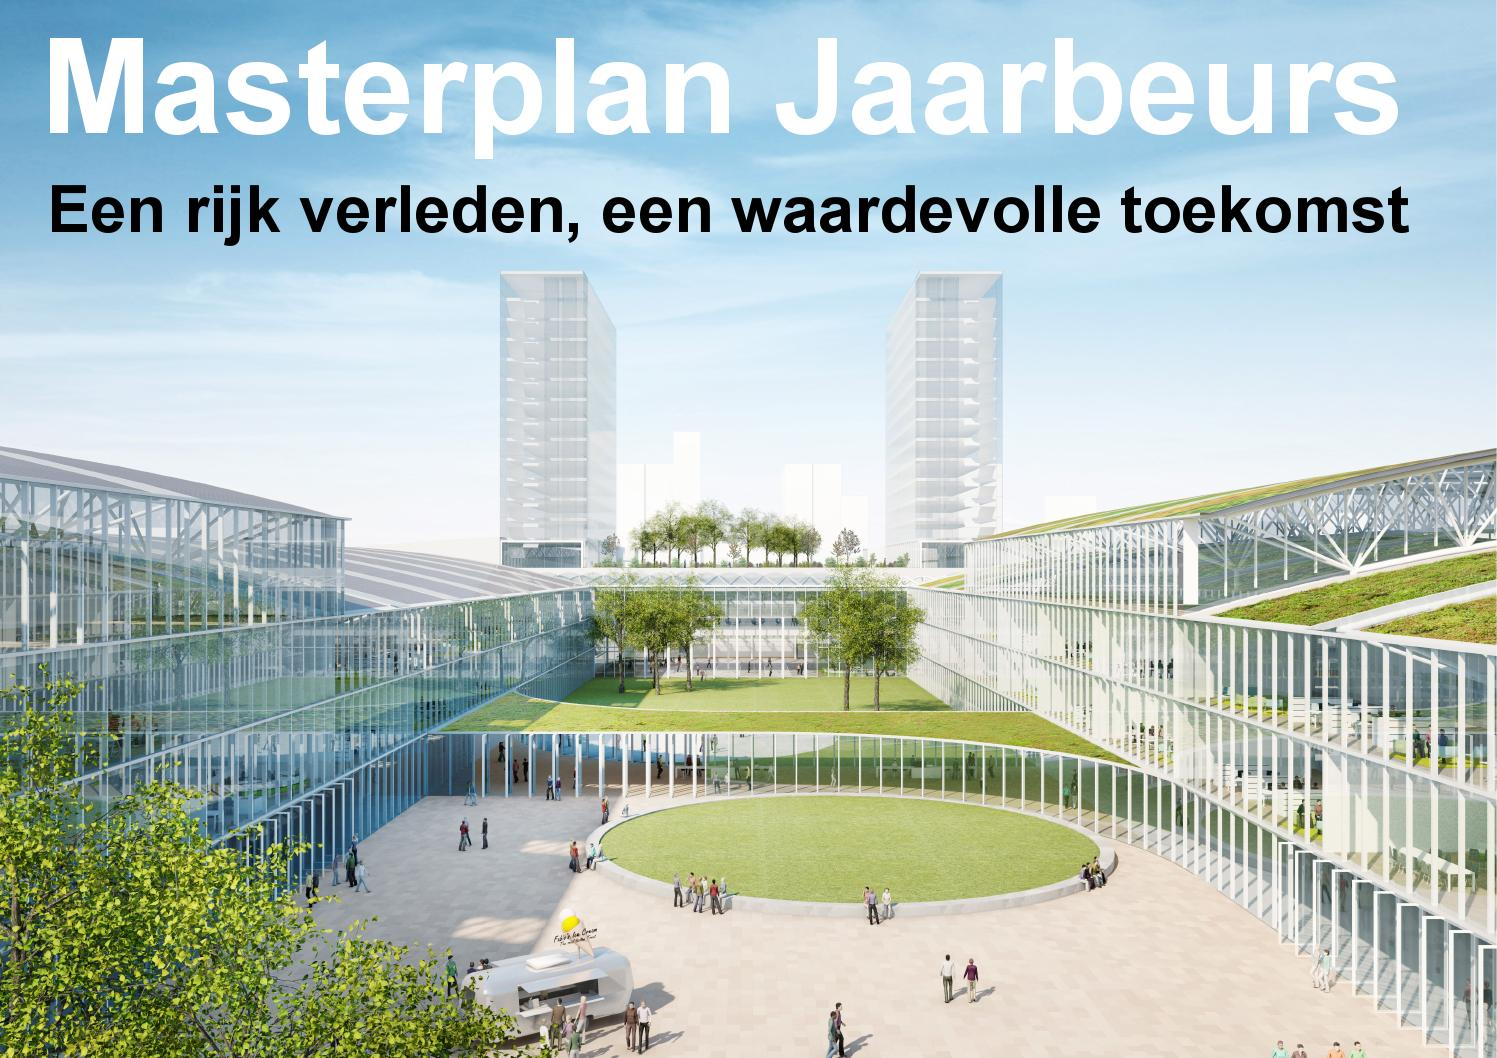 Masterplan jaarbeurs 2016 by bouwput utrecht issuu for Jaarbeurs utrecht 2016